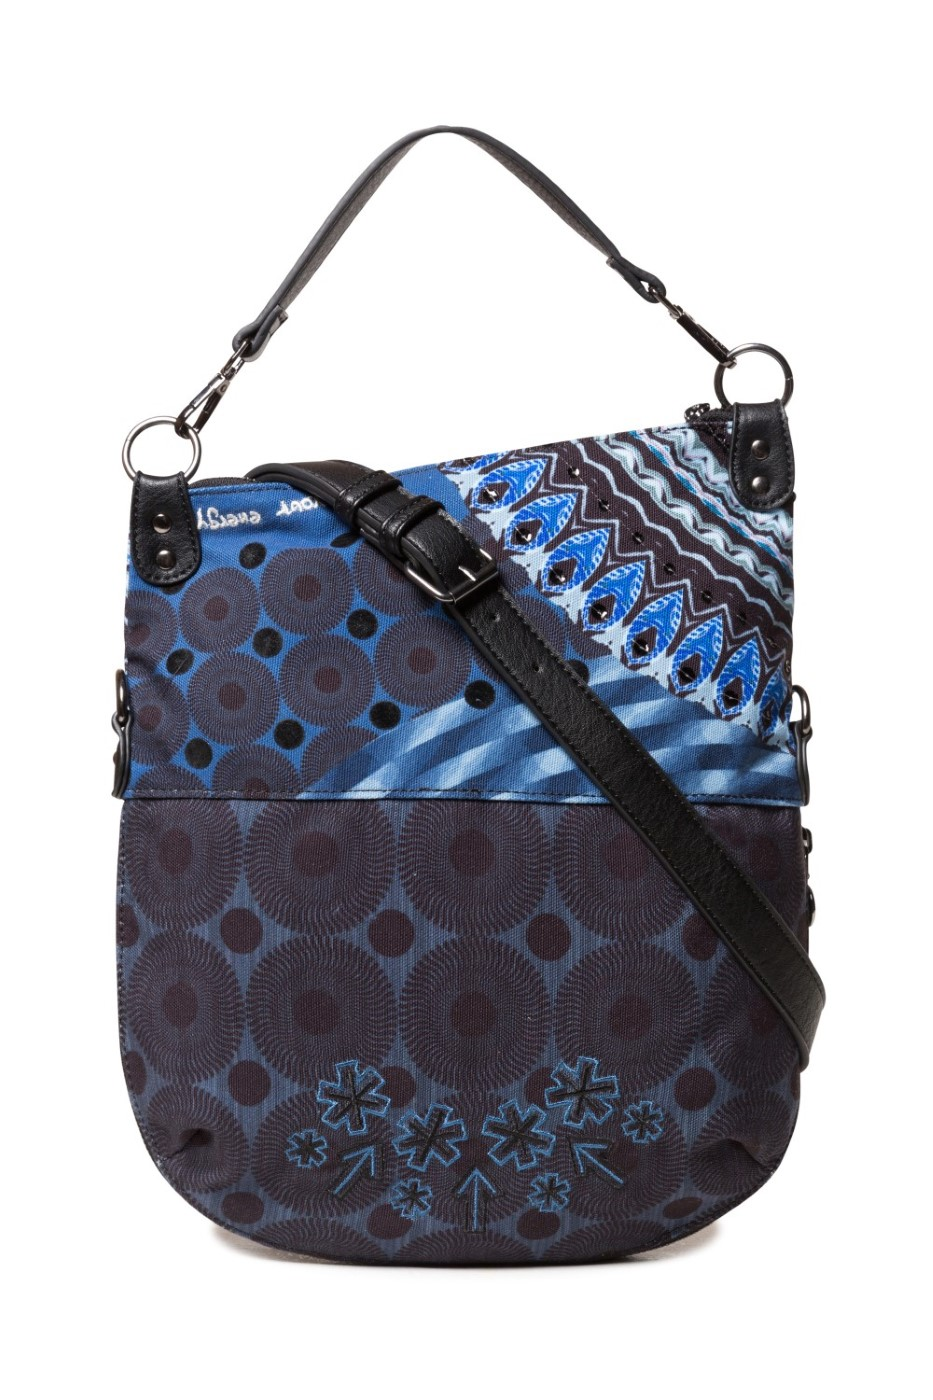 Desigual modrá crossbody kabelka Bols Blue Friend Folded